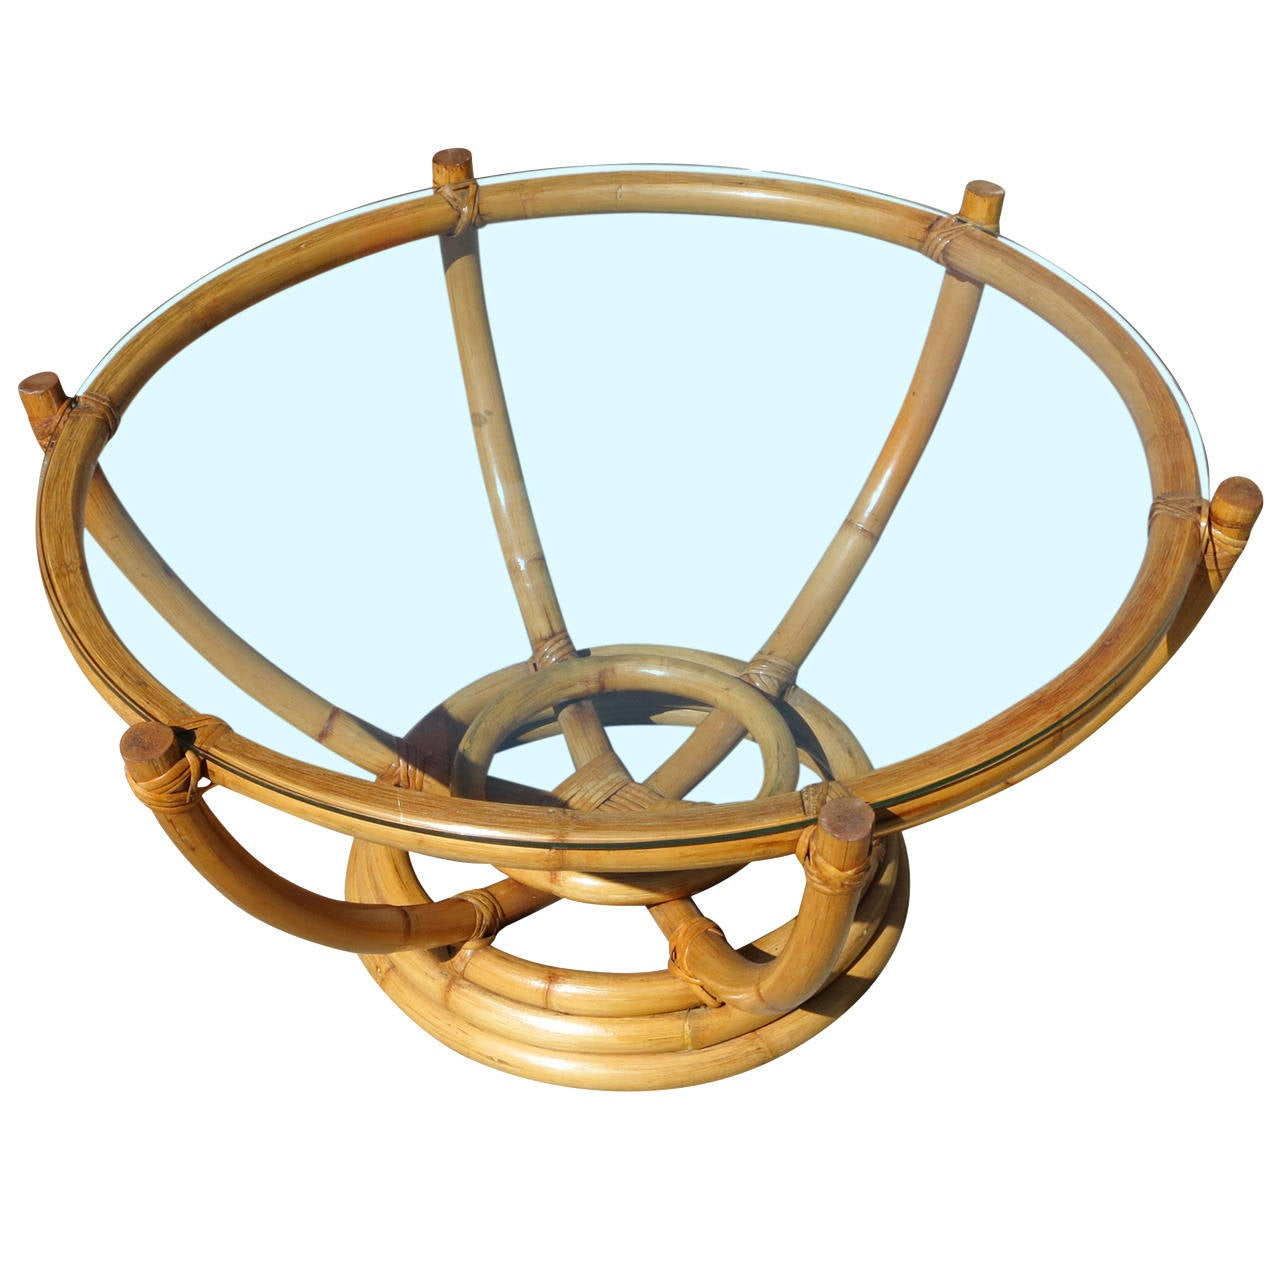 restored six pole rattan coffee table with floating glass top 1 - Rattan Coffee Table